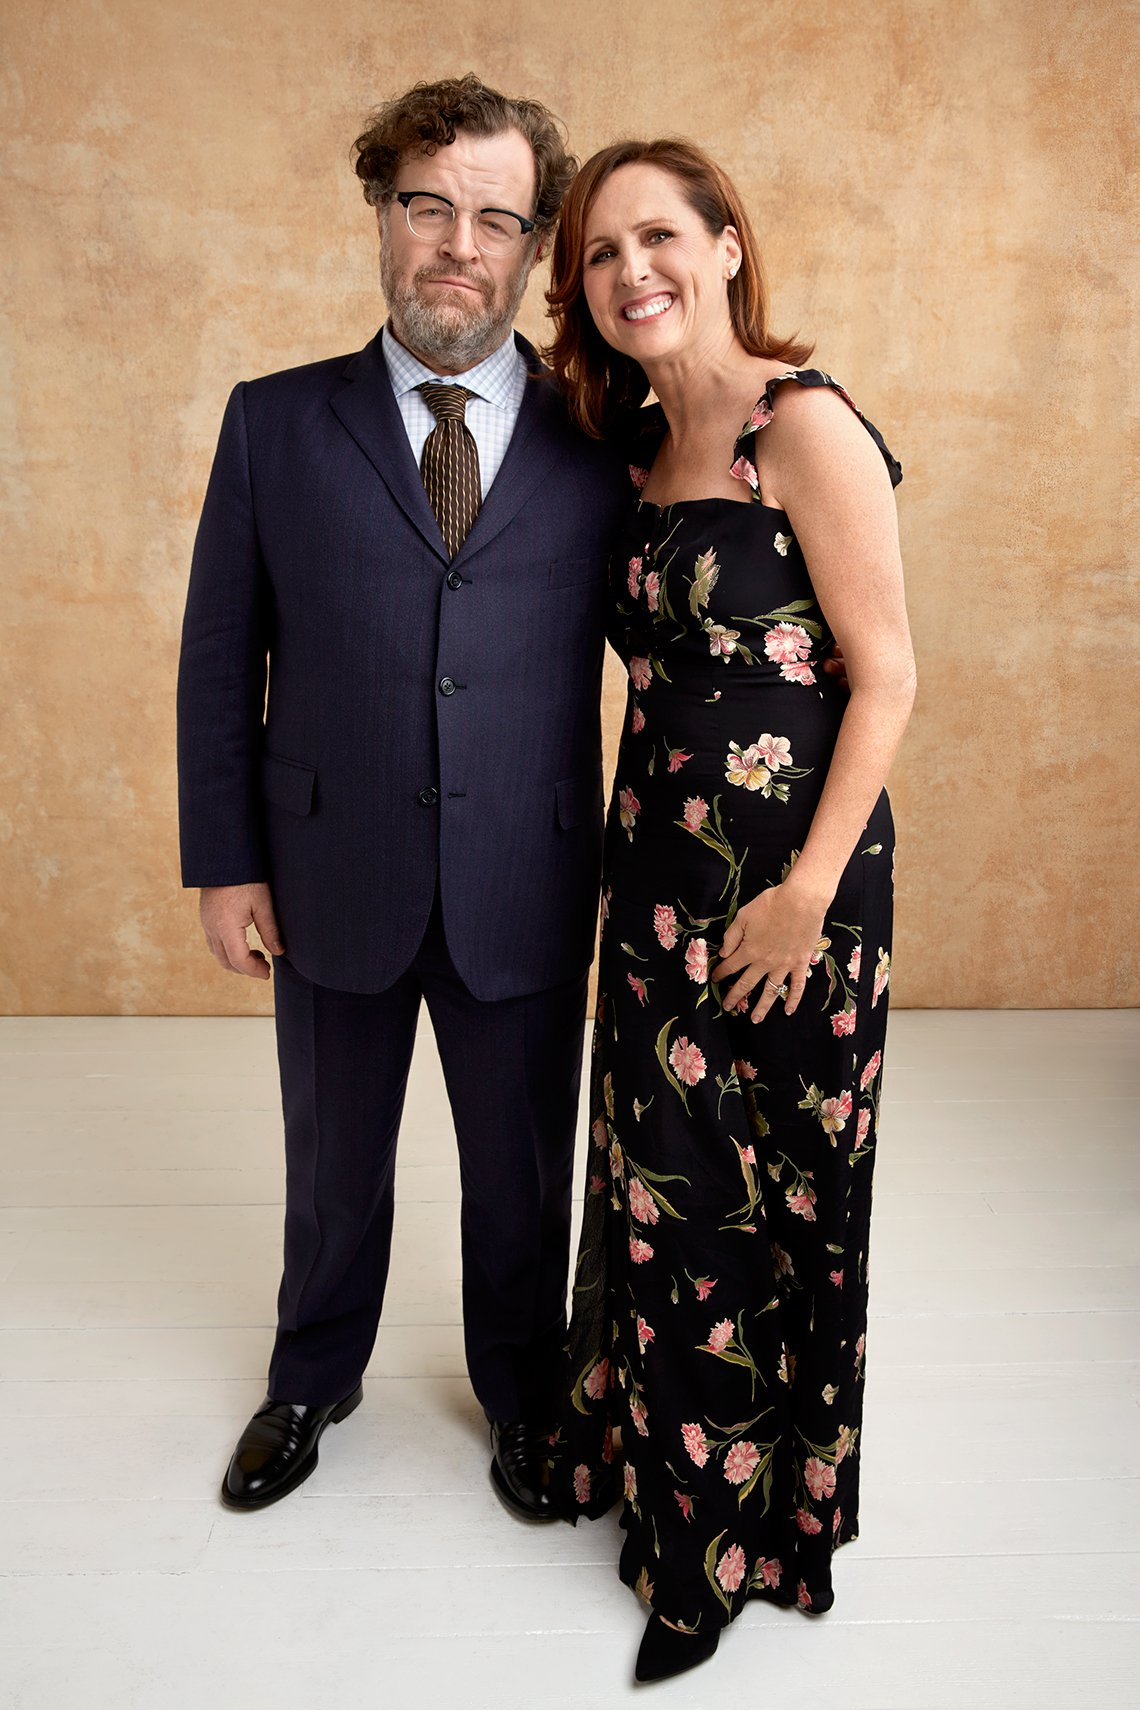 Kenneth Lonergan and Molly Shannon at the 16th Annual AARP The Magazine's Movies for Grownups Awards